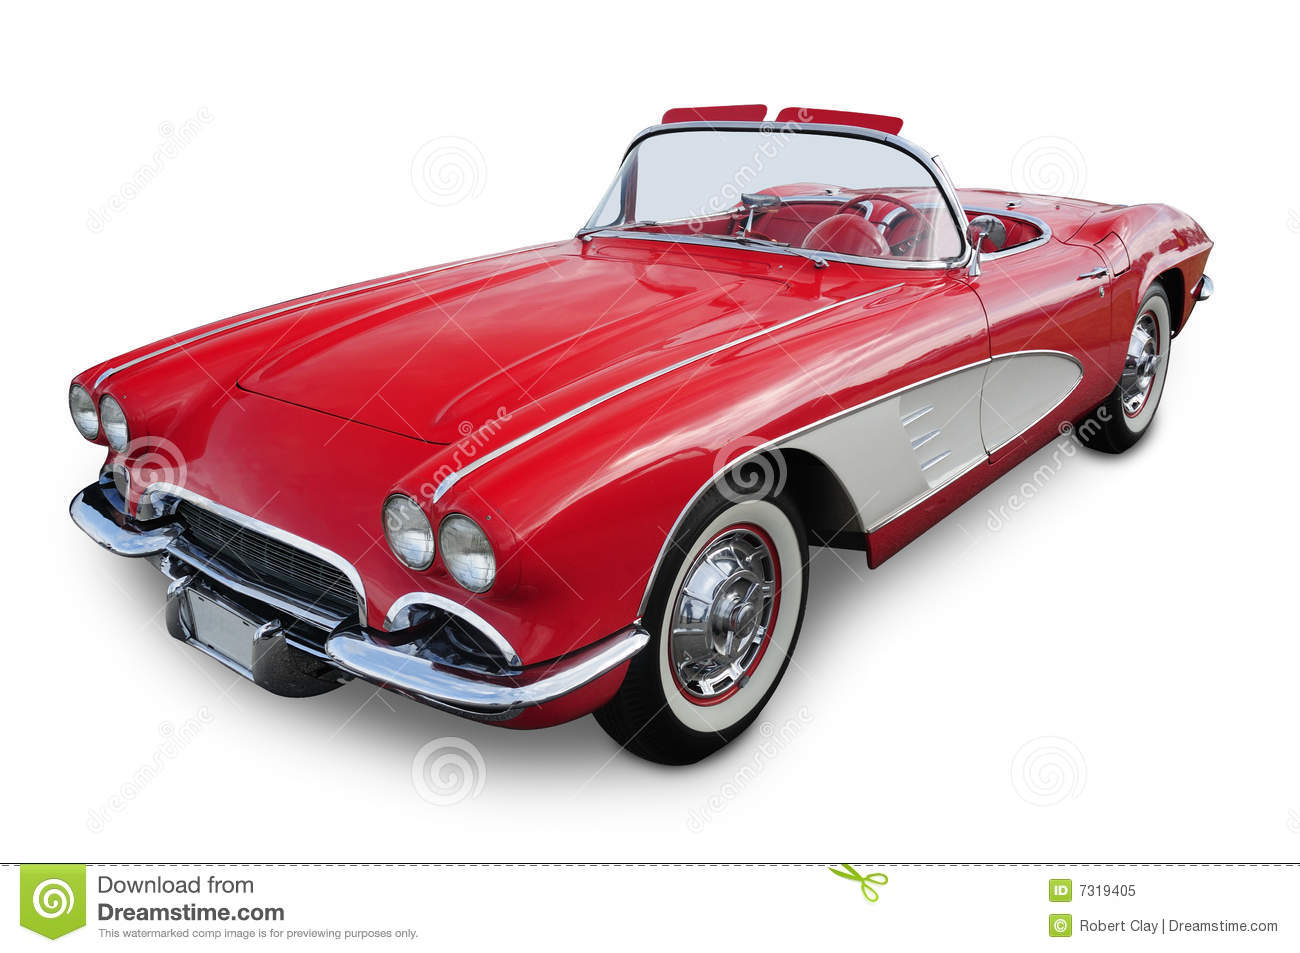 Classic red sports car convertible isolated on white with clipping